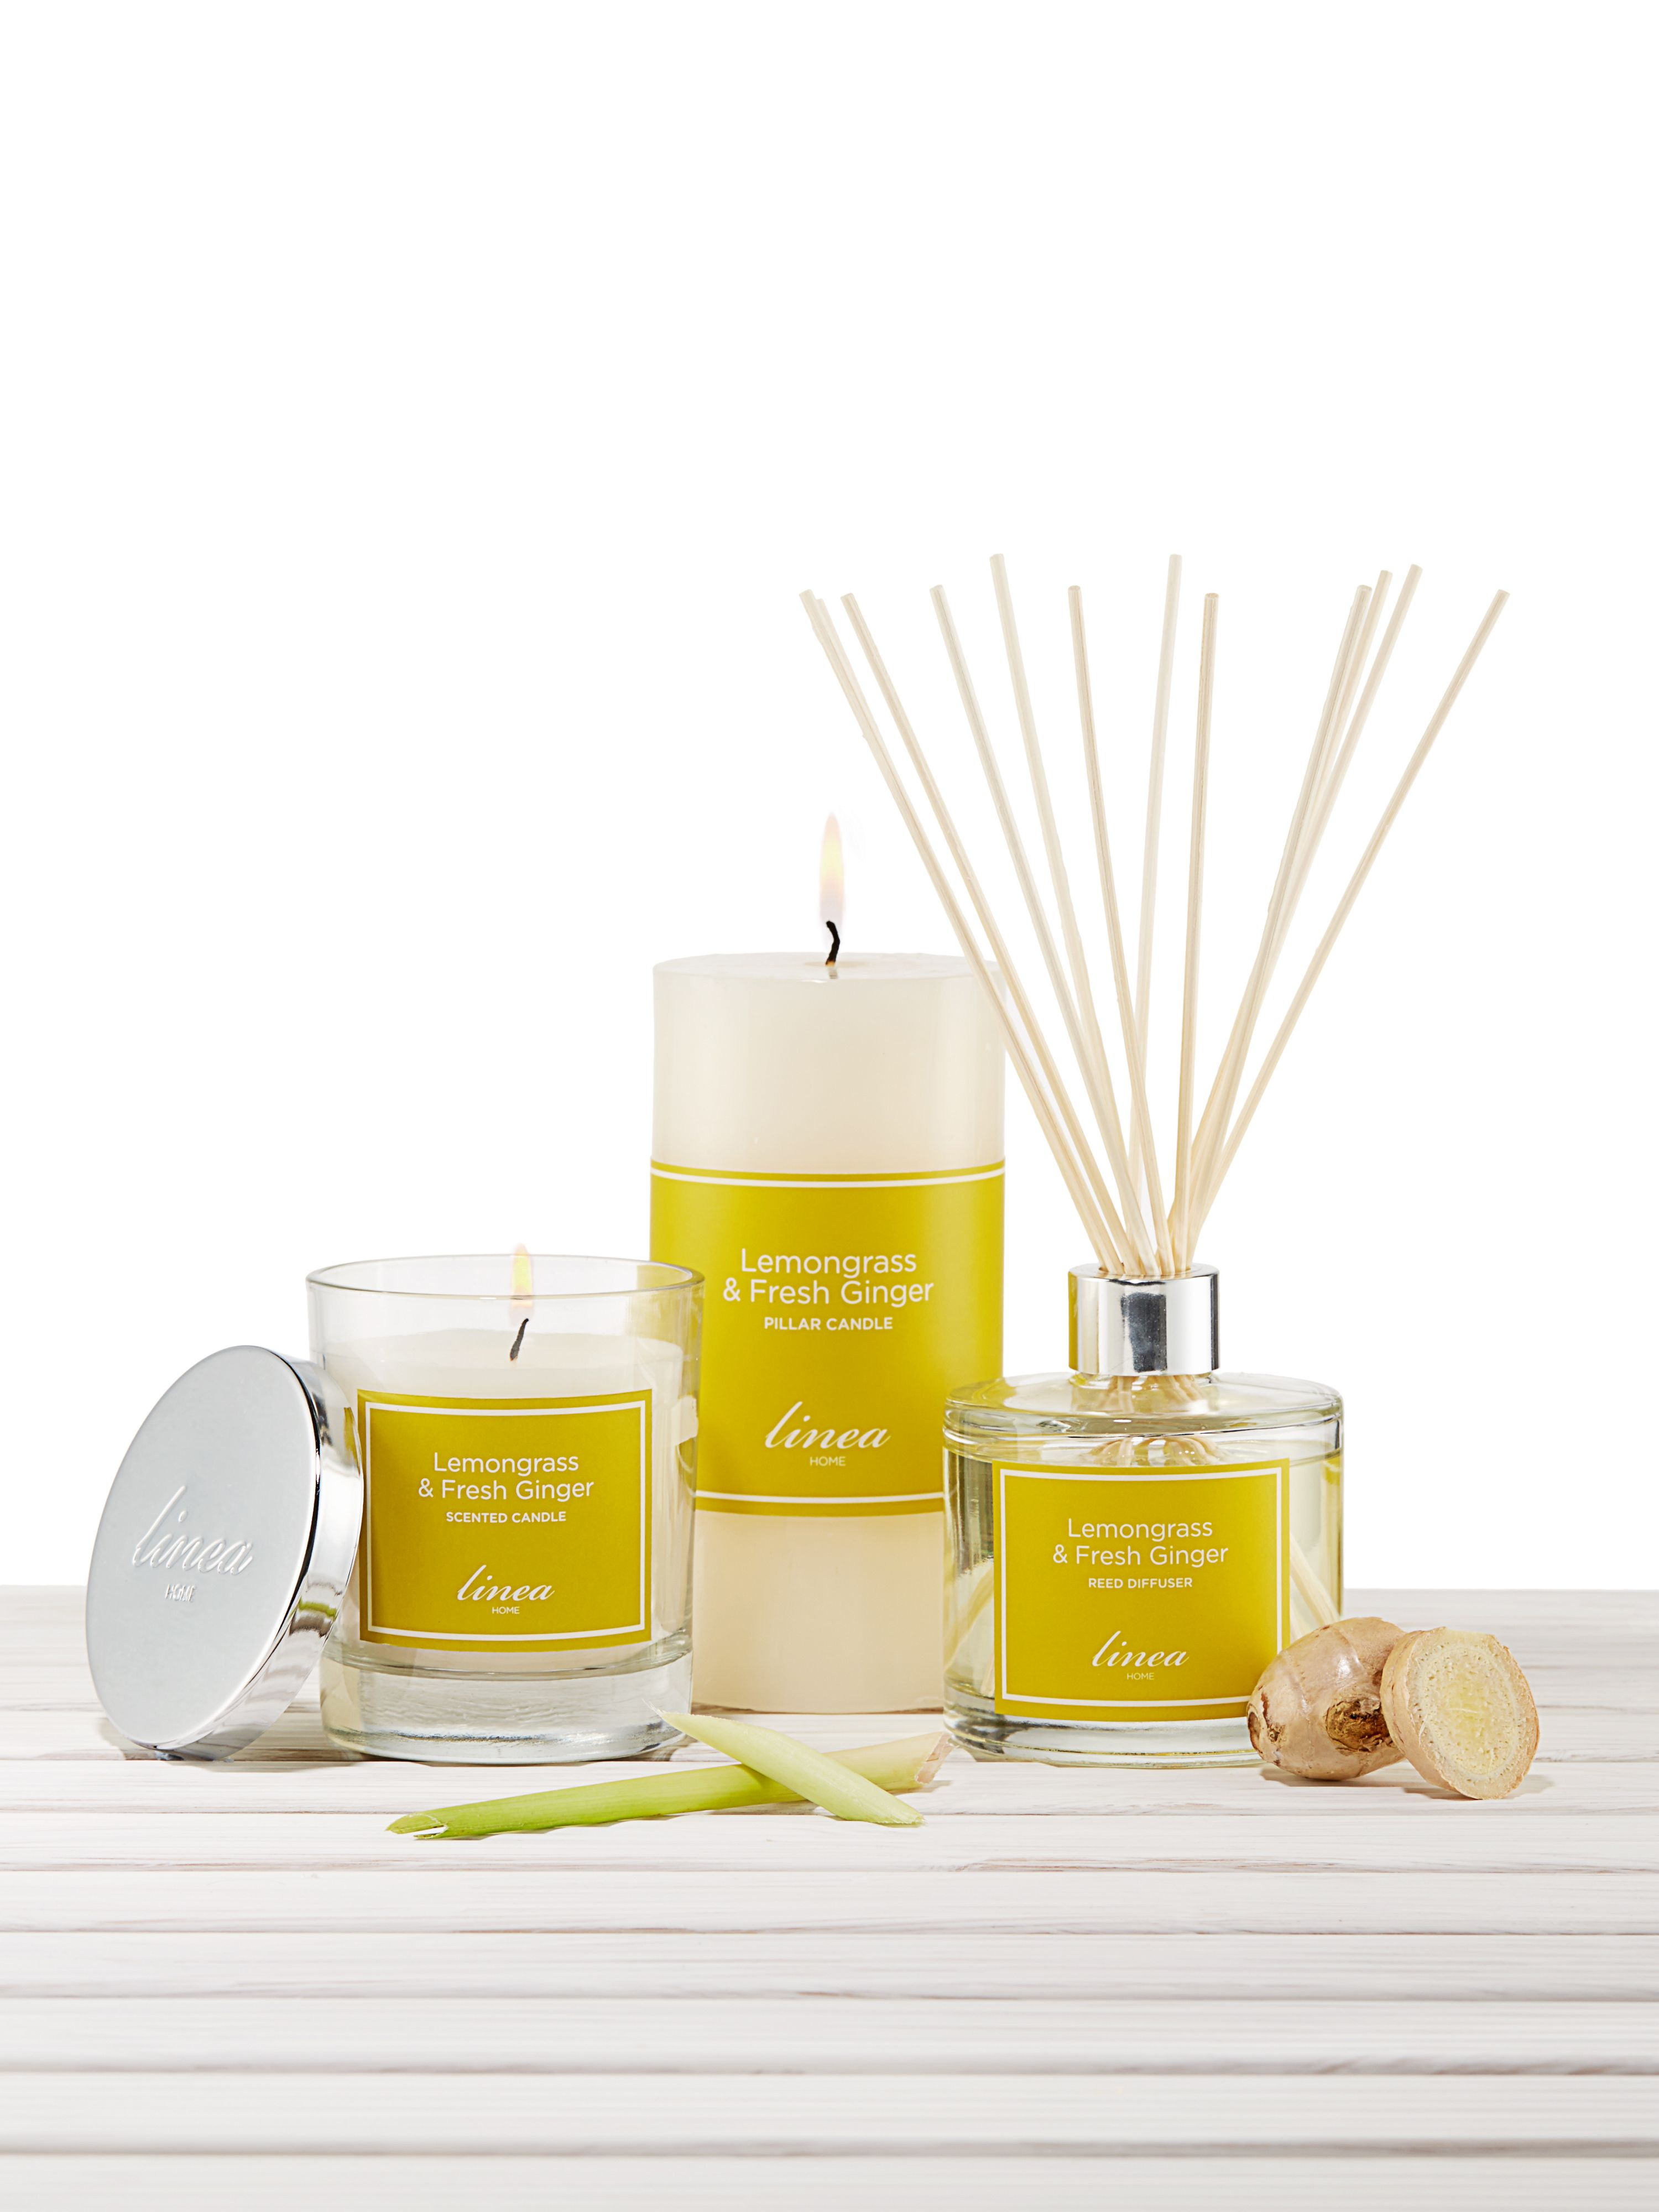 Lemongrass & ginger scent